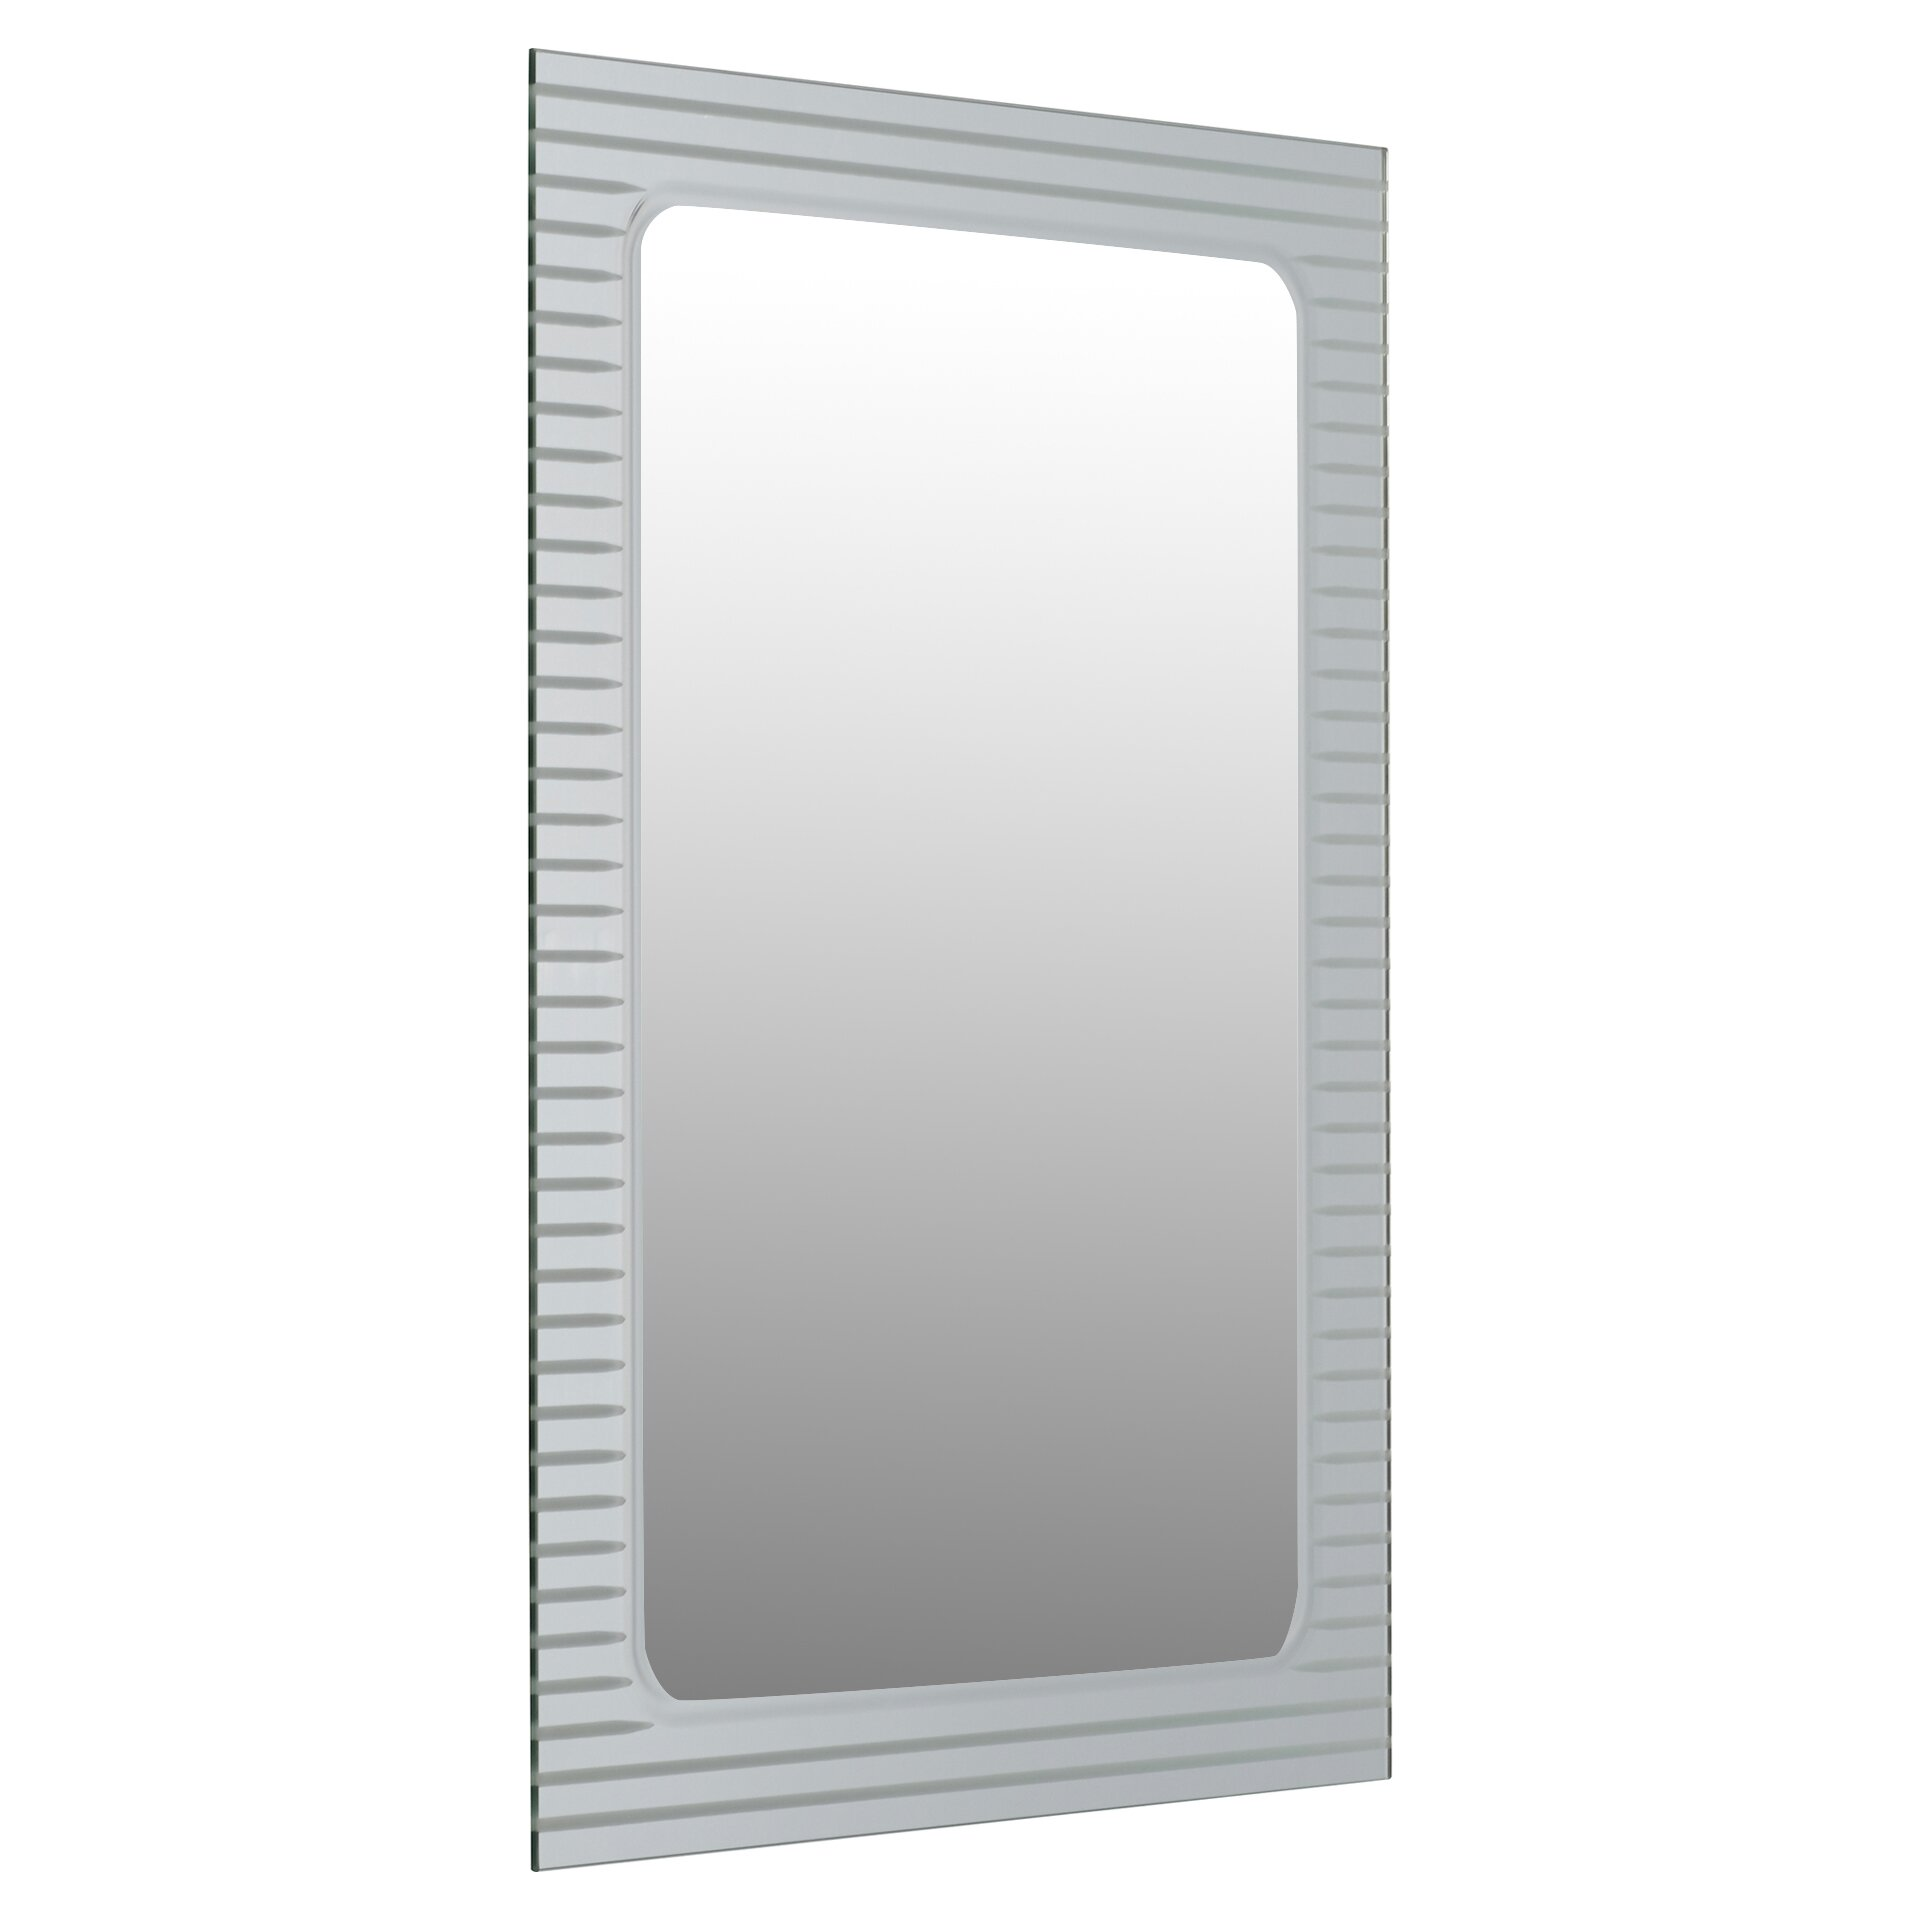 Brayden studio frameless v groove wall mirror reviews for Frameless wall mirror